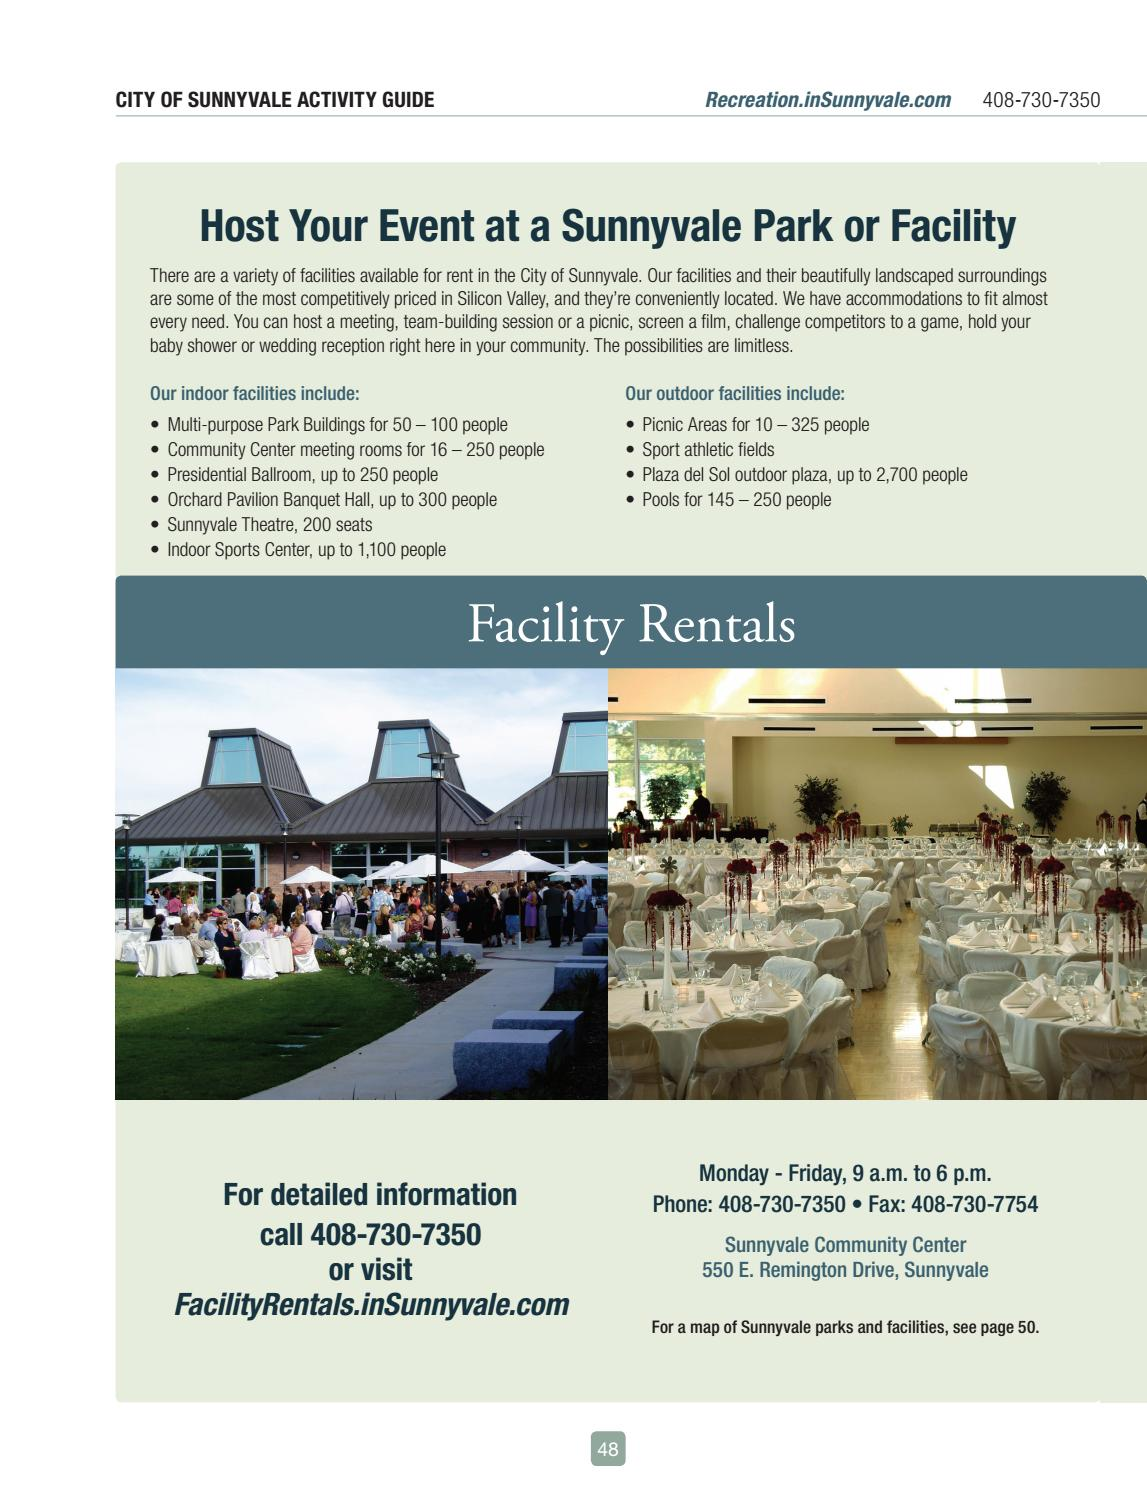 Sunnyvale parks and recreation activity guide.